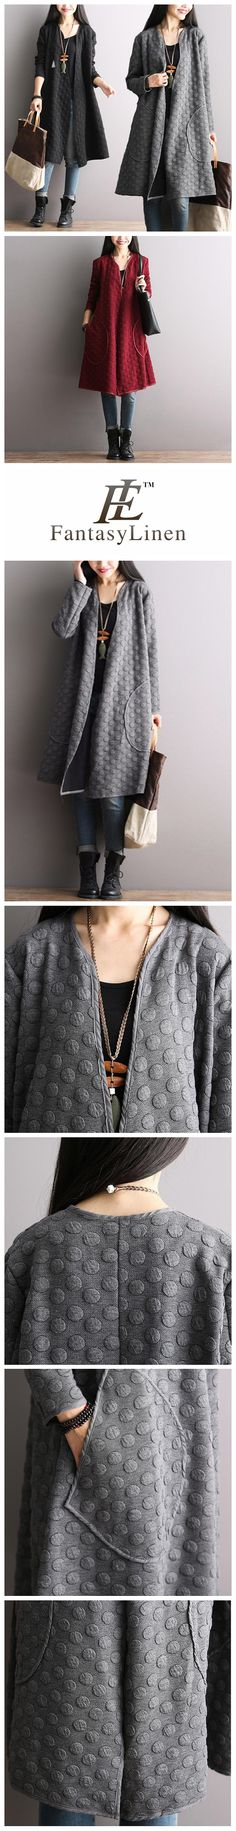 Korean Style Maxi Size Loose Knitting Coat Bat Sleeve Casual Tops Women Clothes W8251A  W8251AGray